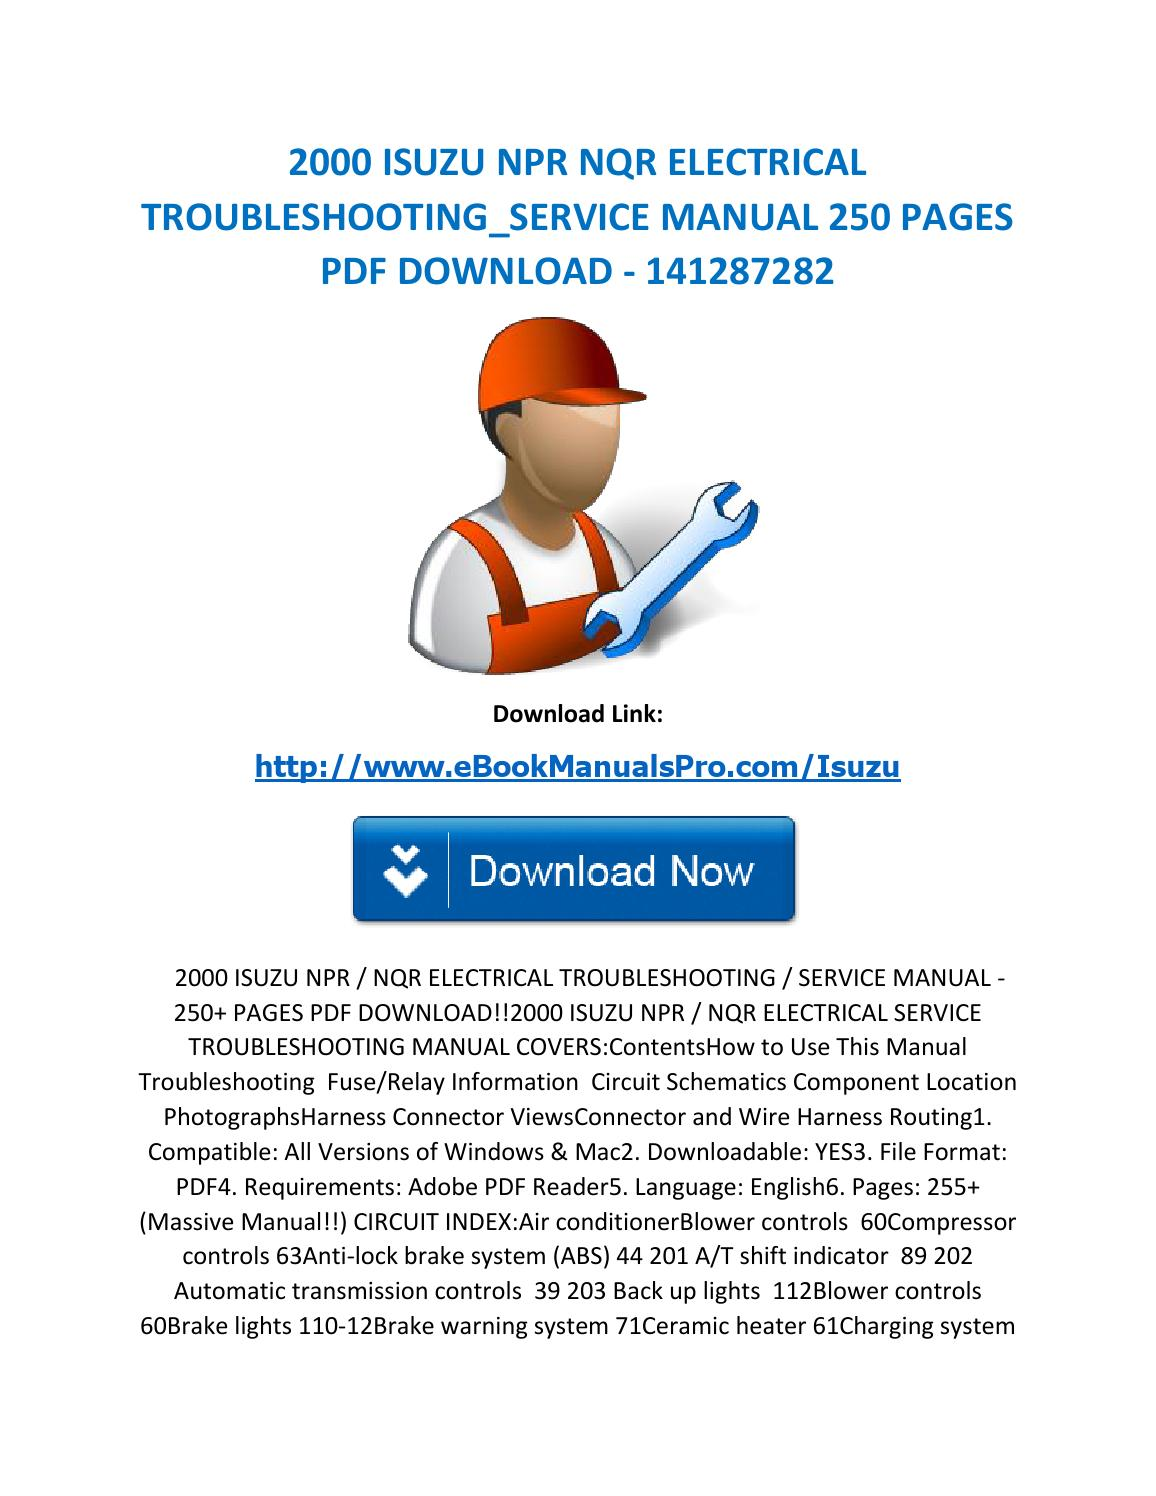 2000 Isuzu Npr Nqr Electrical Troubleshooting Service Manual 250 Pages Pdf Download 141287282 By